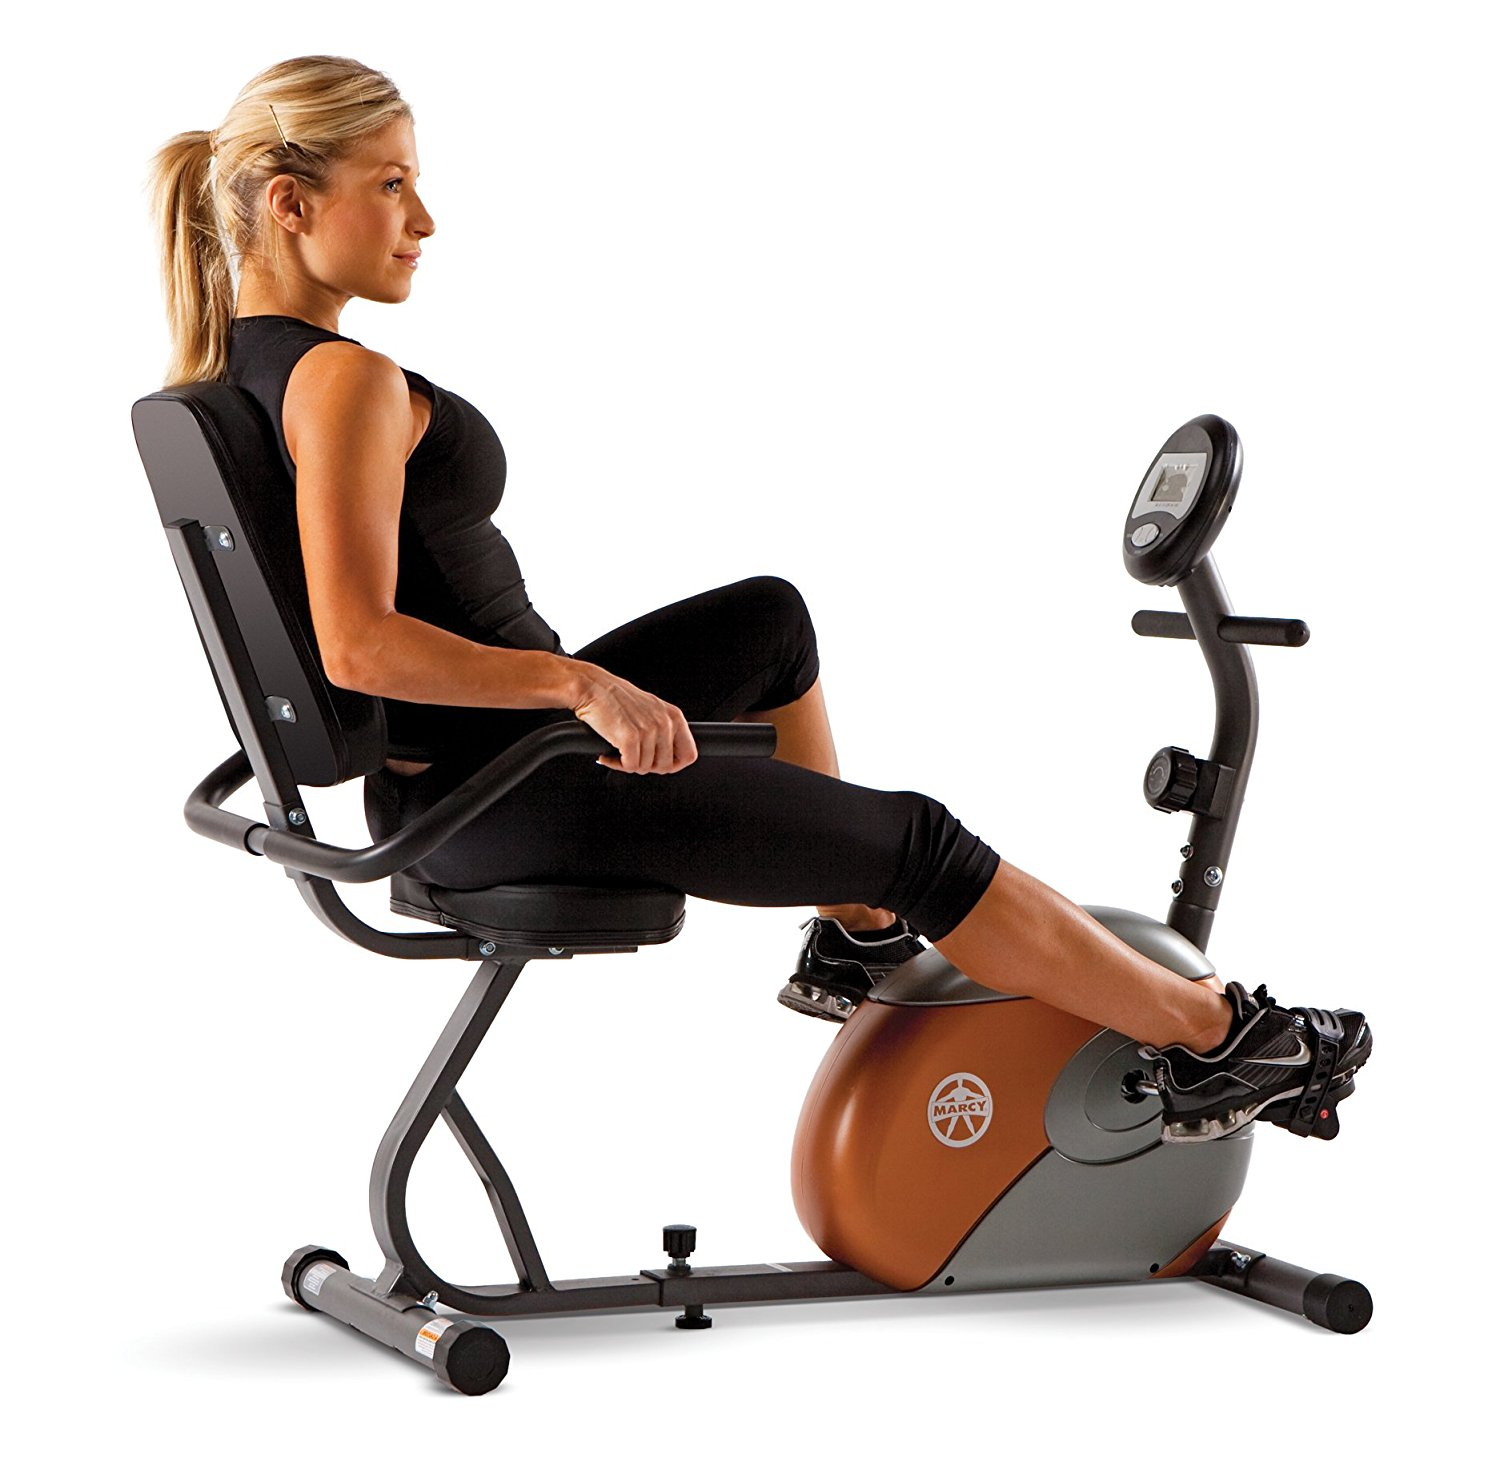 5 Best Exercise Equipments For Back Pain 2018 Reviews